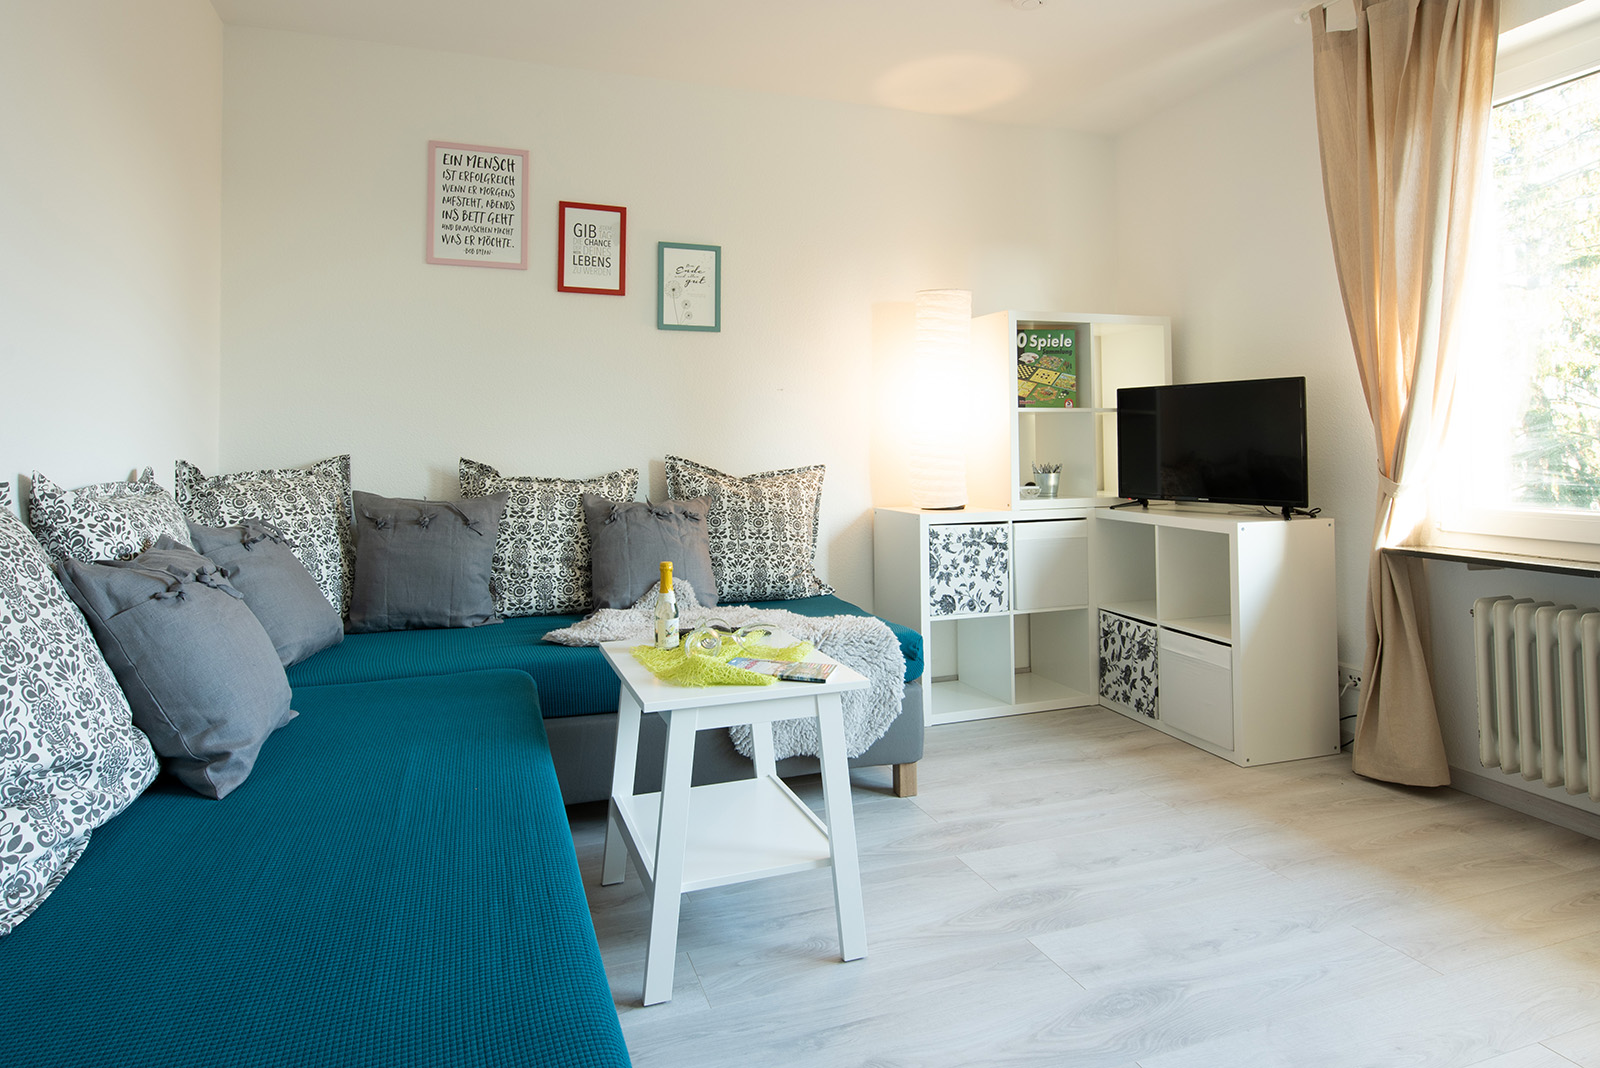 Holiday apartments on Lake Constance: Ittendorf - Living Room